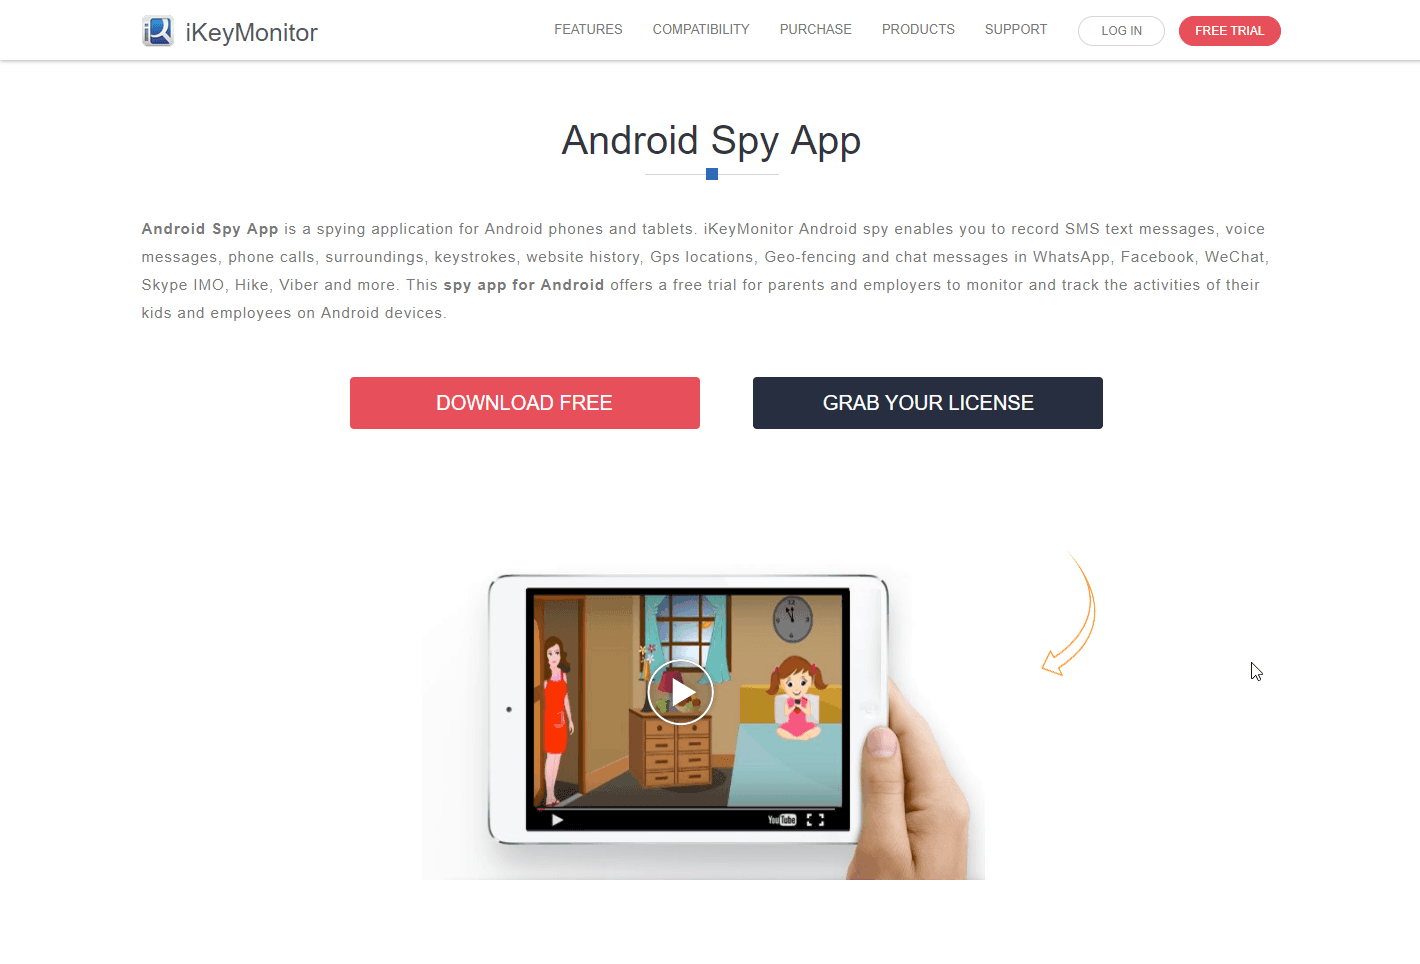 Android Spy APp